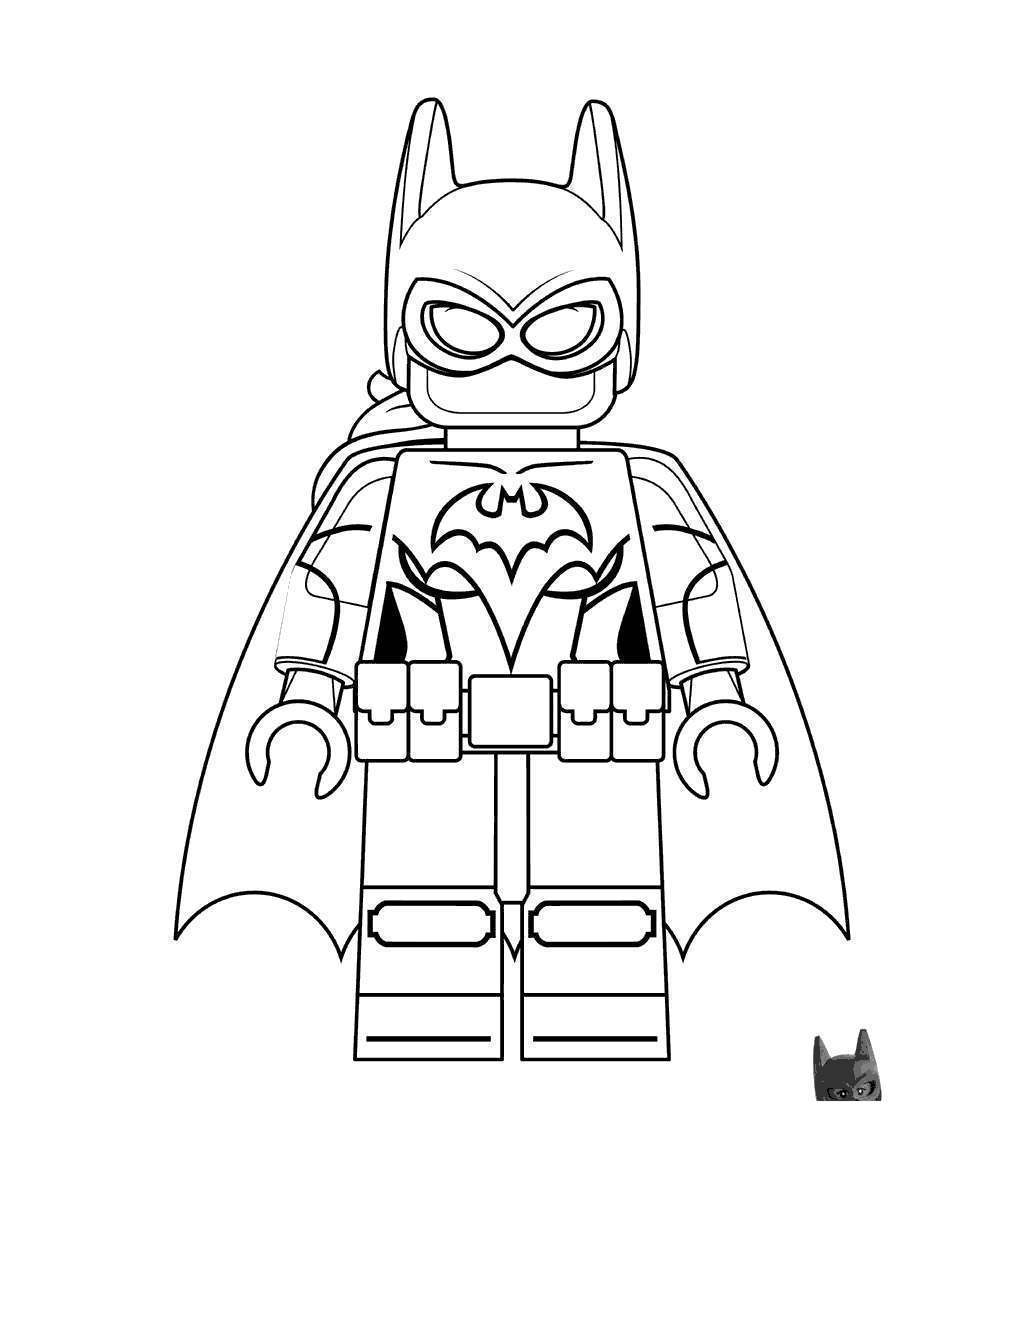 Lego Superhero Batman Coloring Pages Sheets Line Drawing Free